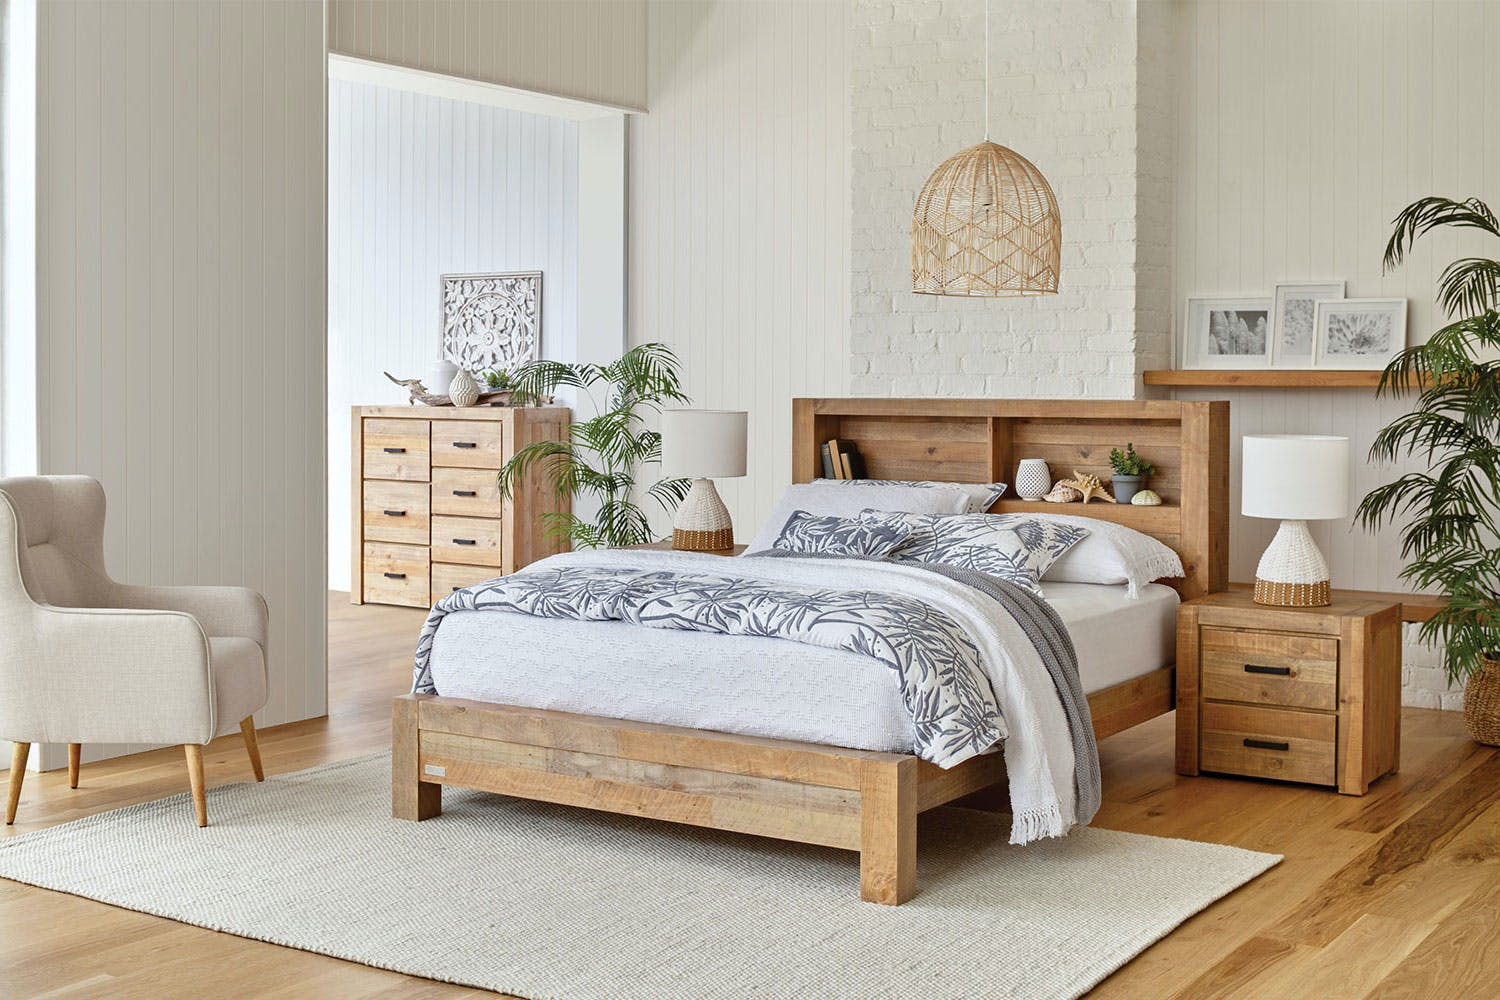 Coolmore 4 Piece King Dresser And Mirror Suite By Stoke Furniture Harvey Norman New Zealand